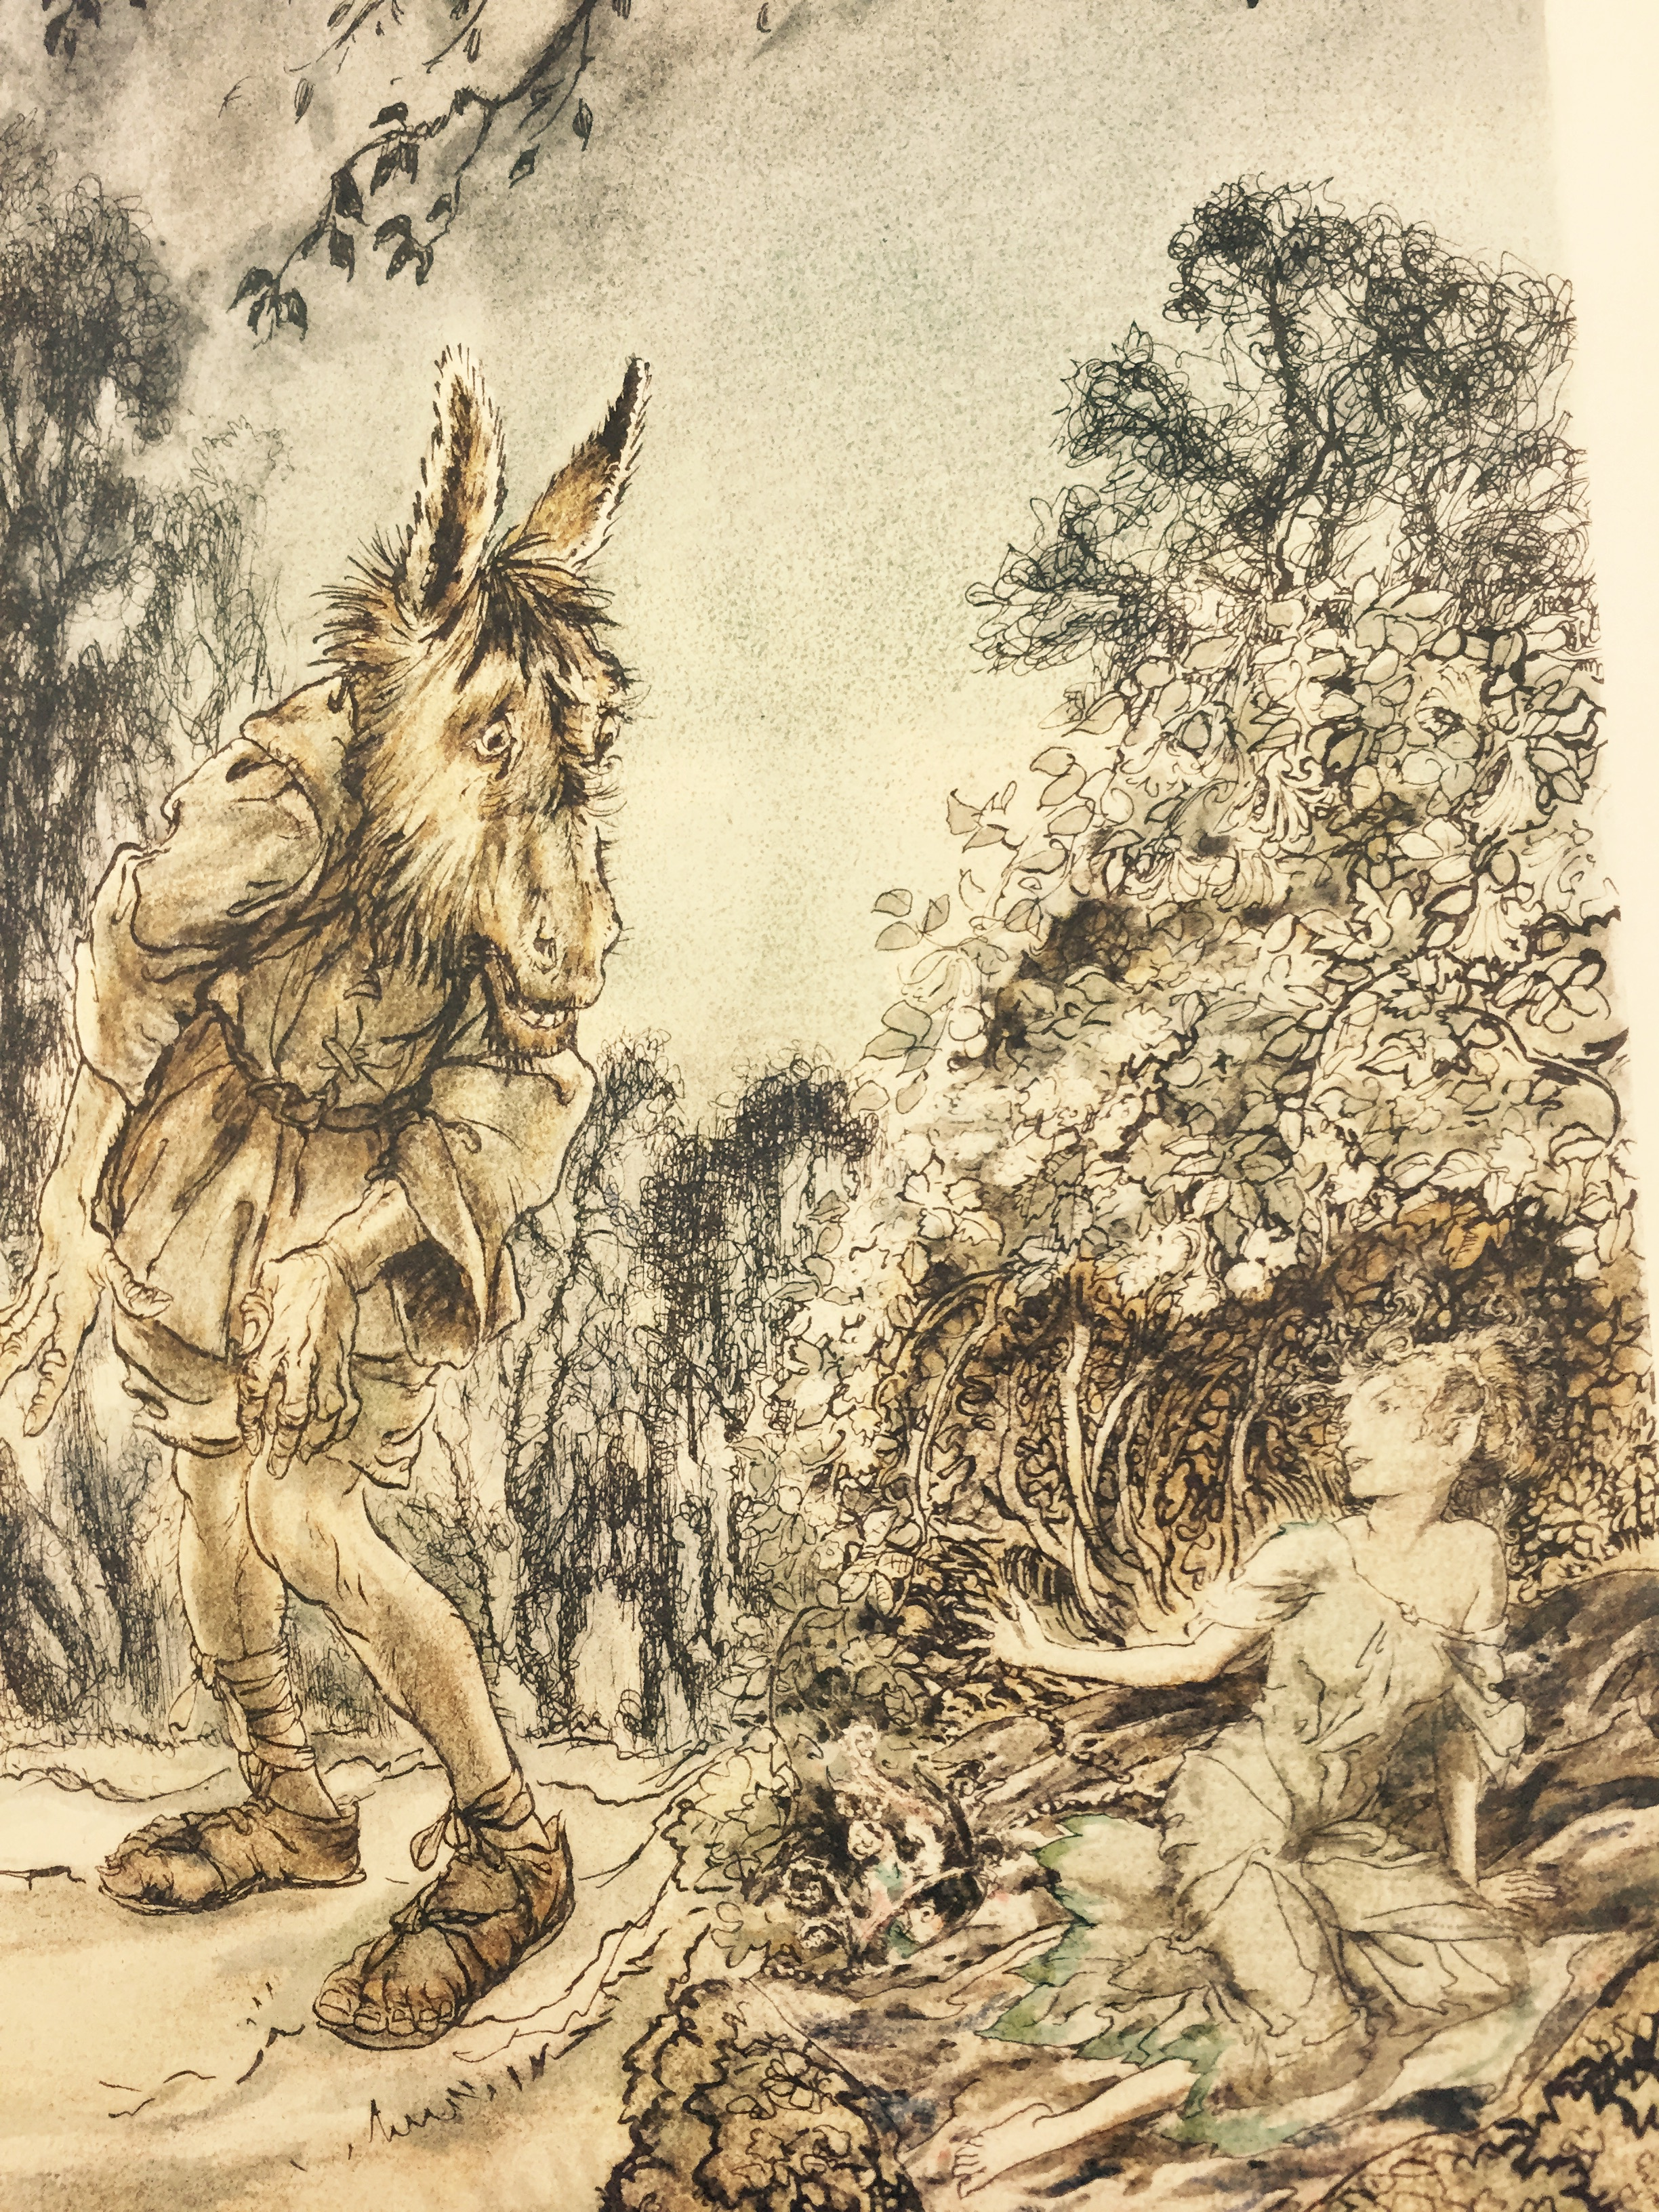 subplot in midsummer nights dream essay A summary of act iv, scene ii in william shakespeare's a midsummer night's dream learn exactly what happened in this chapter, scene, or section of a midsummer.